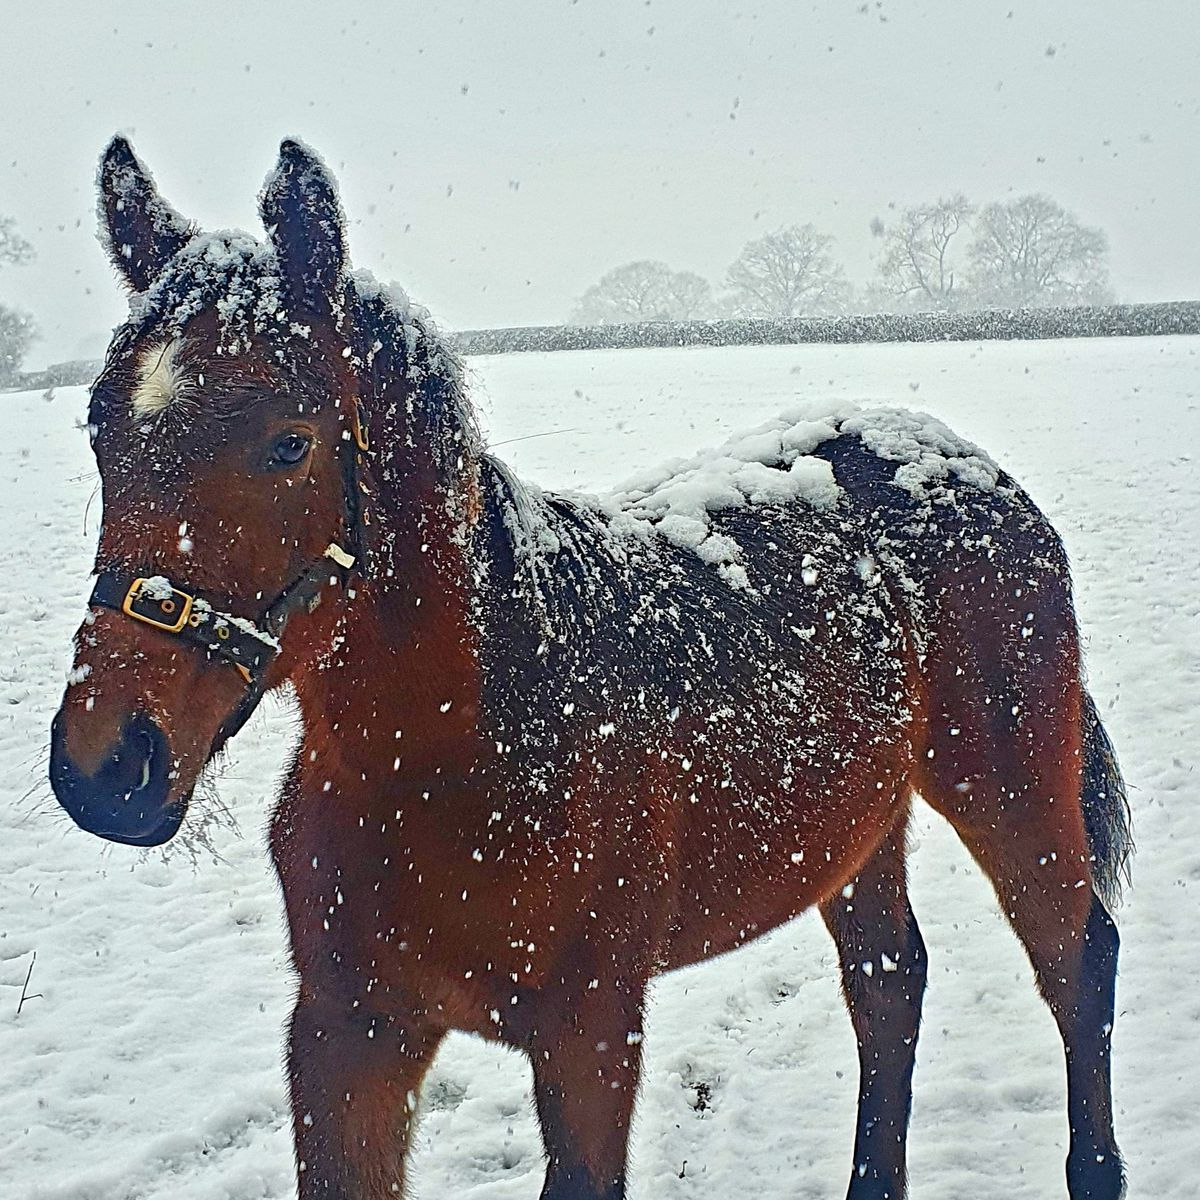 Eight-month-old foal Polly enjoying the snow in Albrighton. Photo: Tracey Sharp